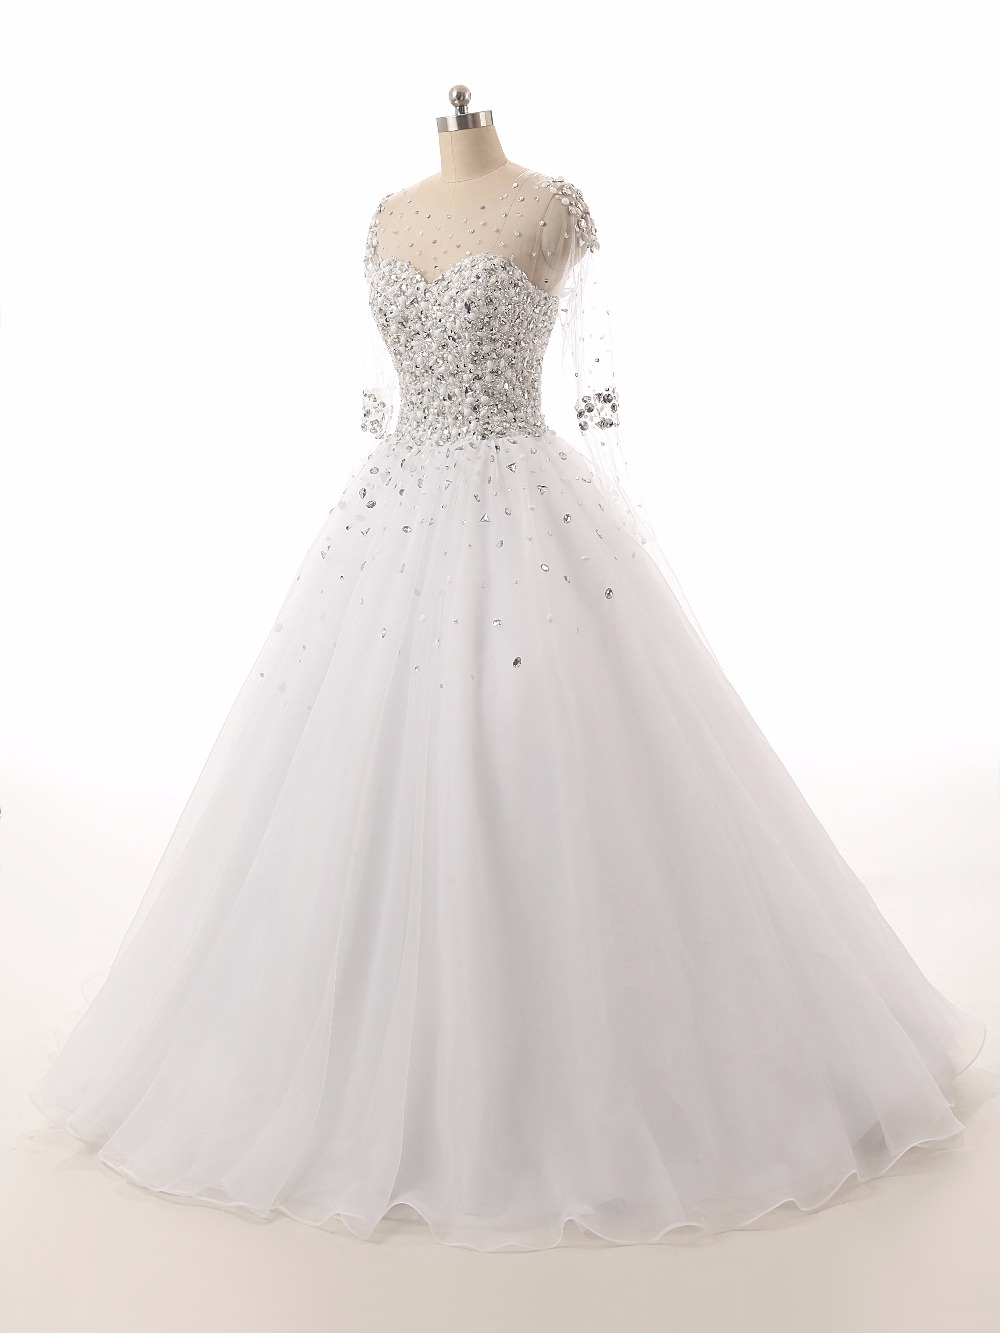 vestido de noiva Beaded Sexy Wedding Dress 2016 V-Neck Short Sleeves Zipper Back Court Train Bride Gown Top Selling